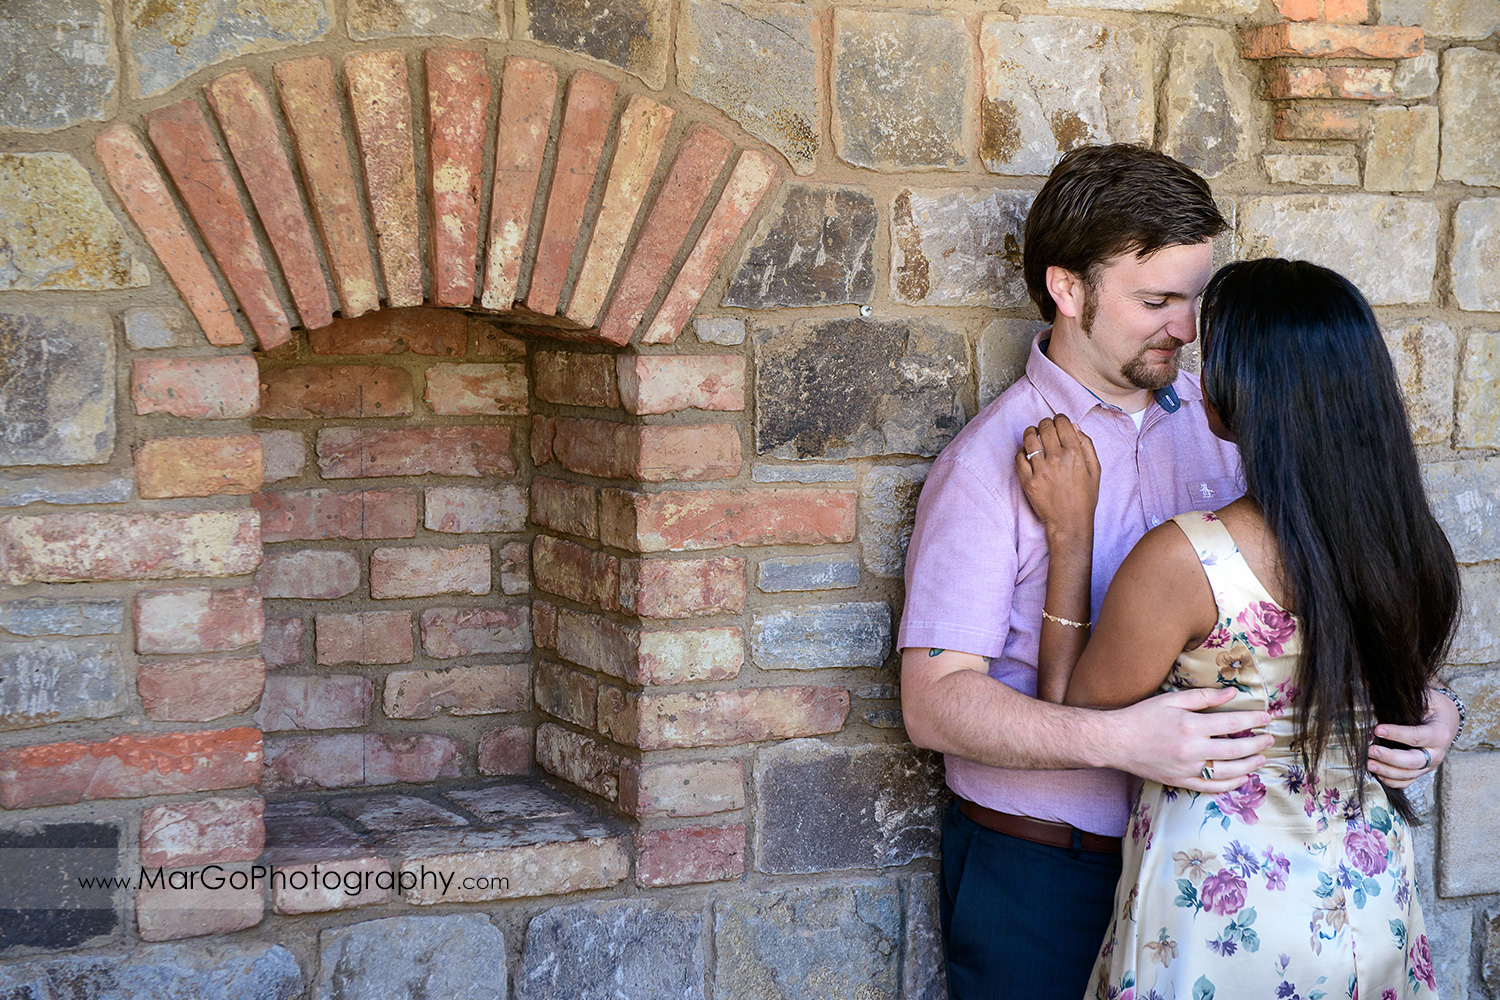 man in pink shirt and Indian woman in flower dress leaning against the brick wall and looking at each other during engagement session at Castello di Amorosa in Calistoga